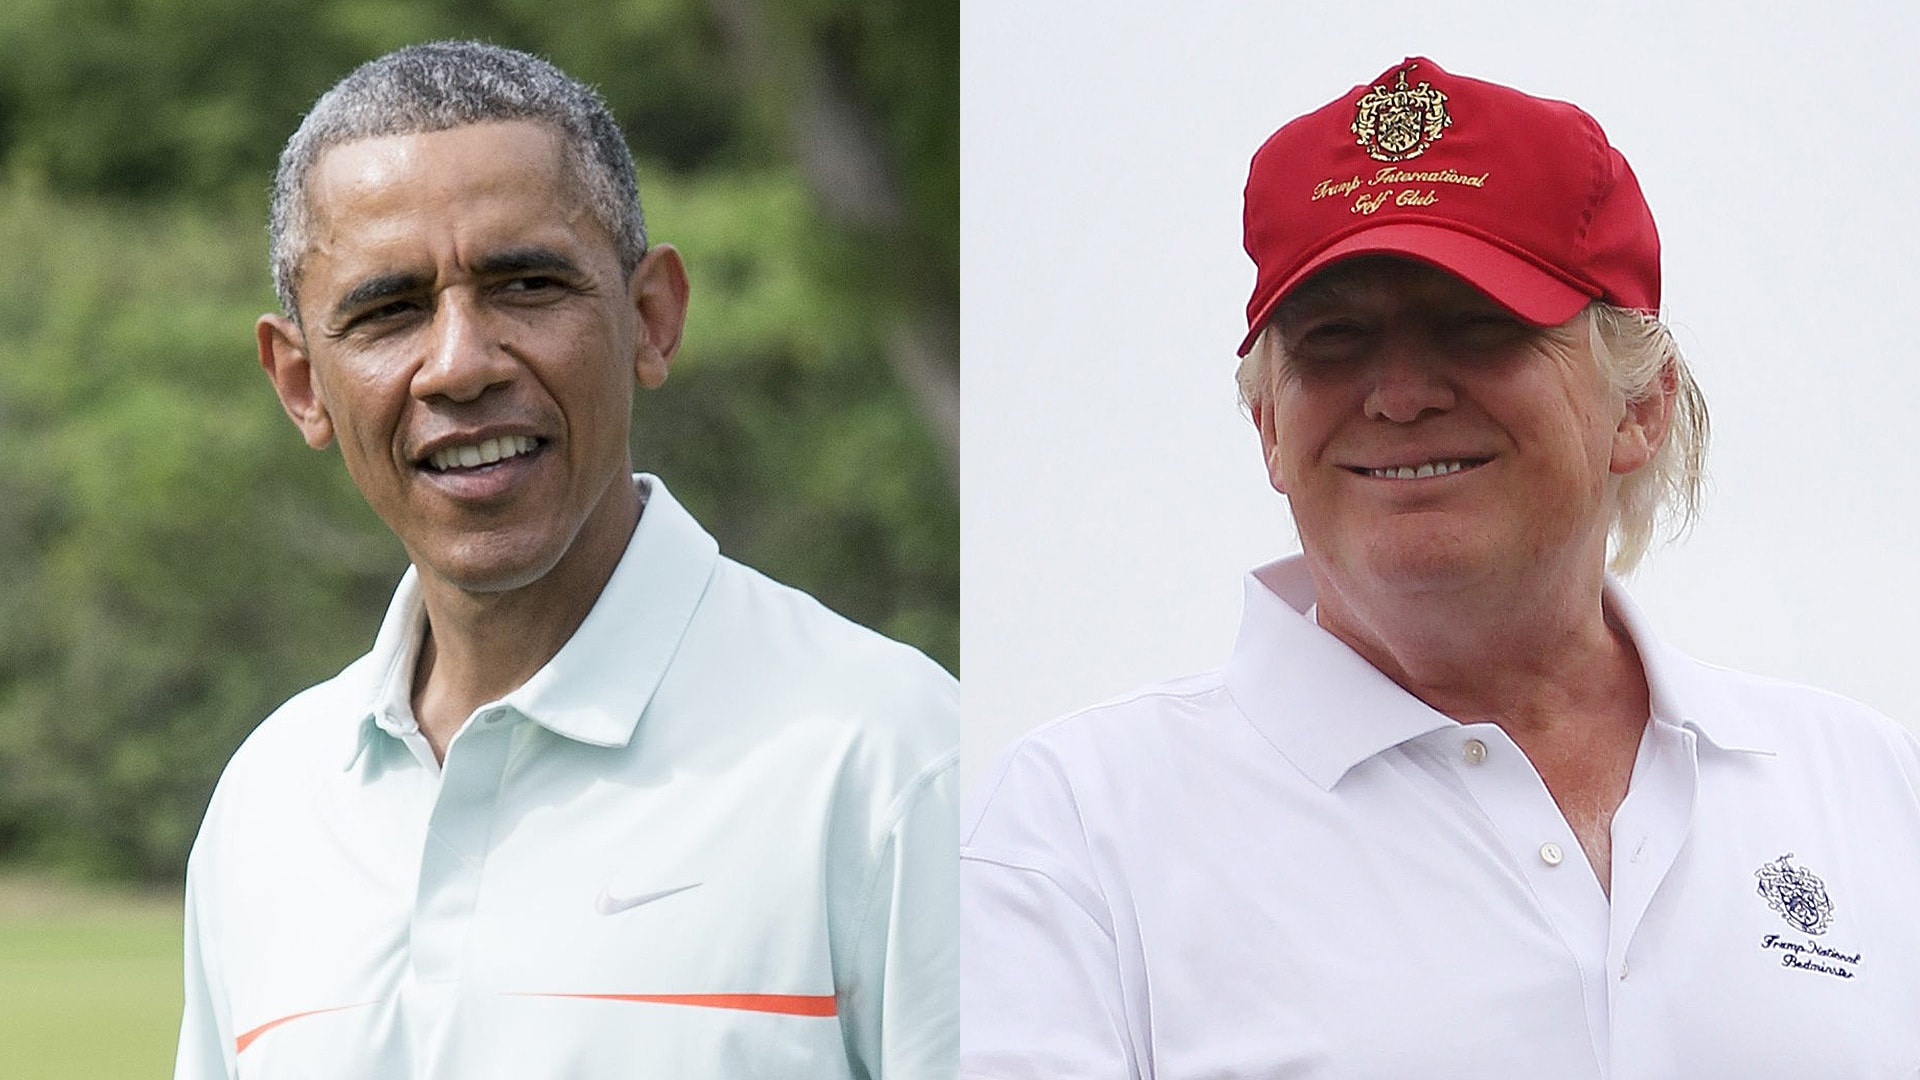 Barack Obama, Donald Trump Get in Year-End Golf Round (Separately)